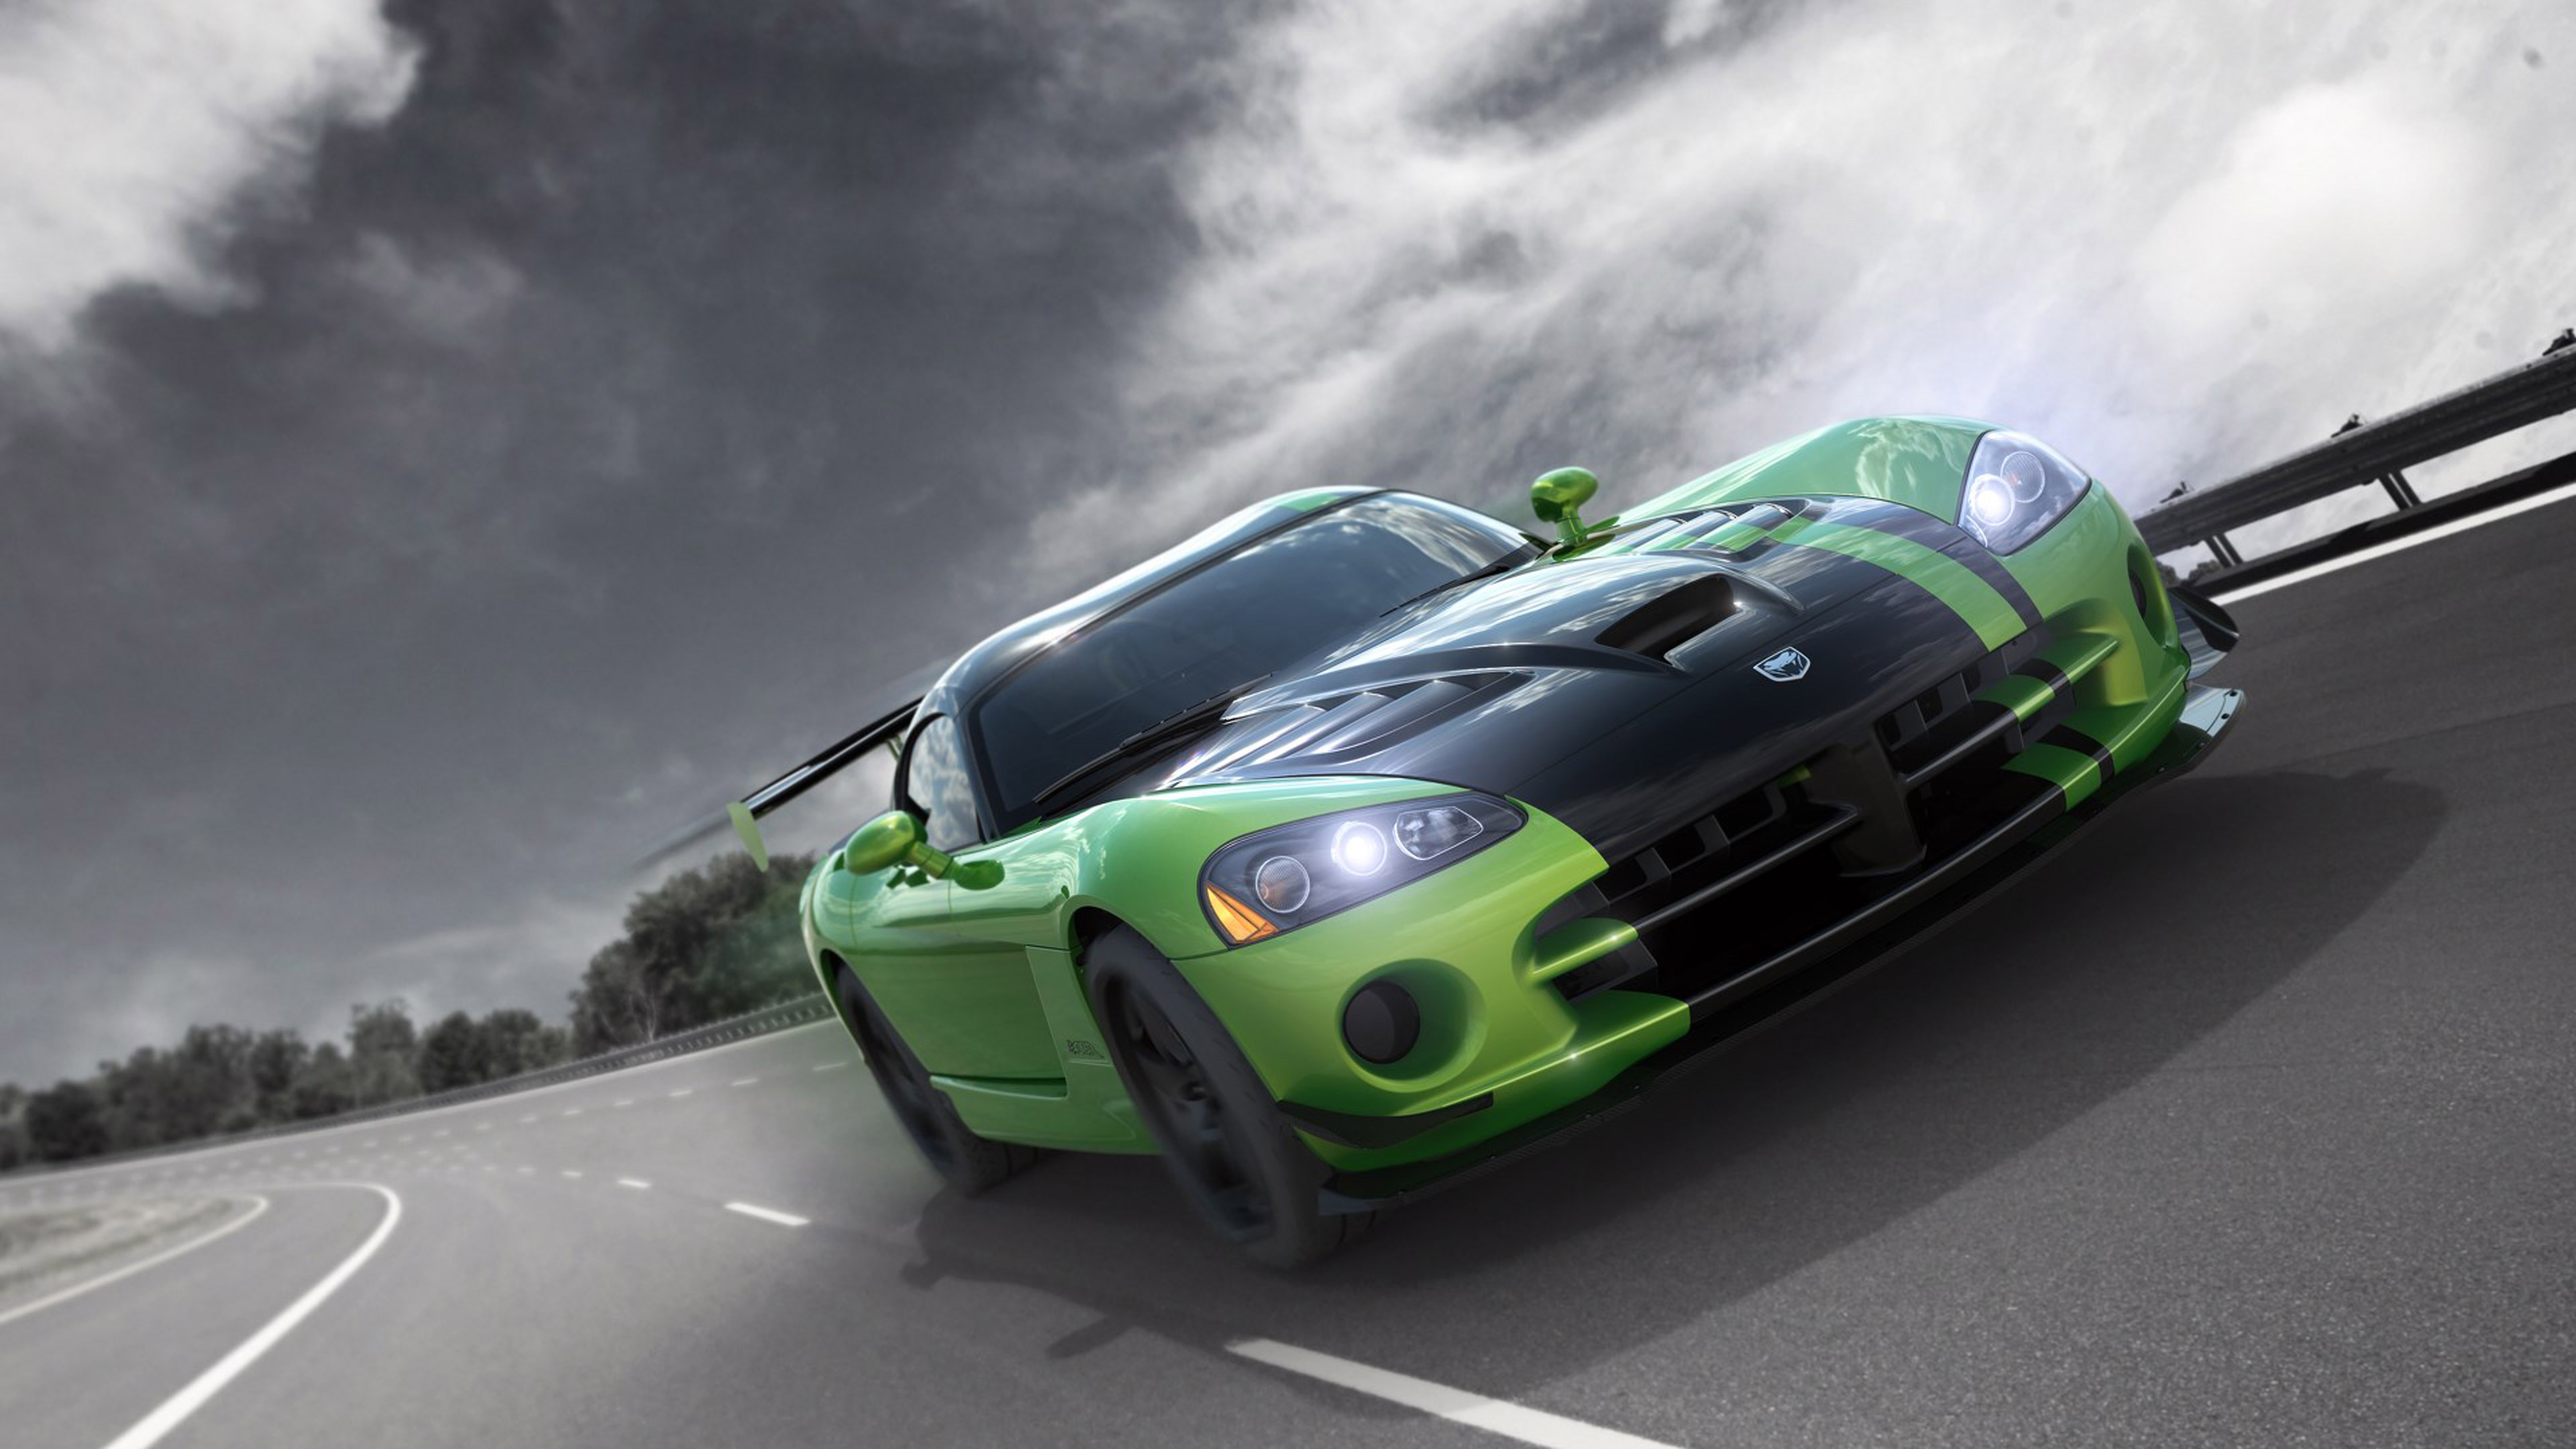 dodge viper 25th anniversary model 1539104606 - Dodge Viper 25th Anniversary Model - dodge viper wallpapers, cars wallpapers